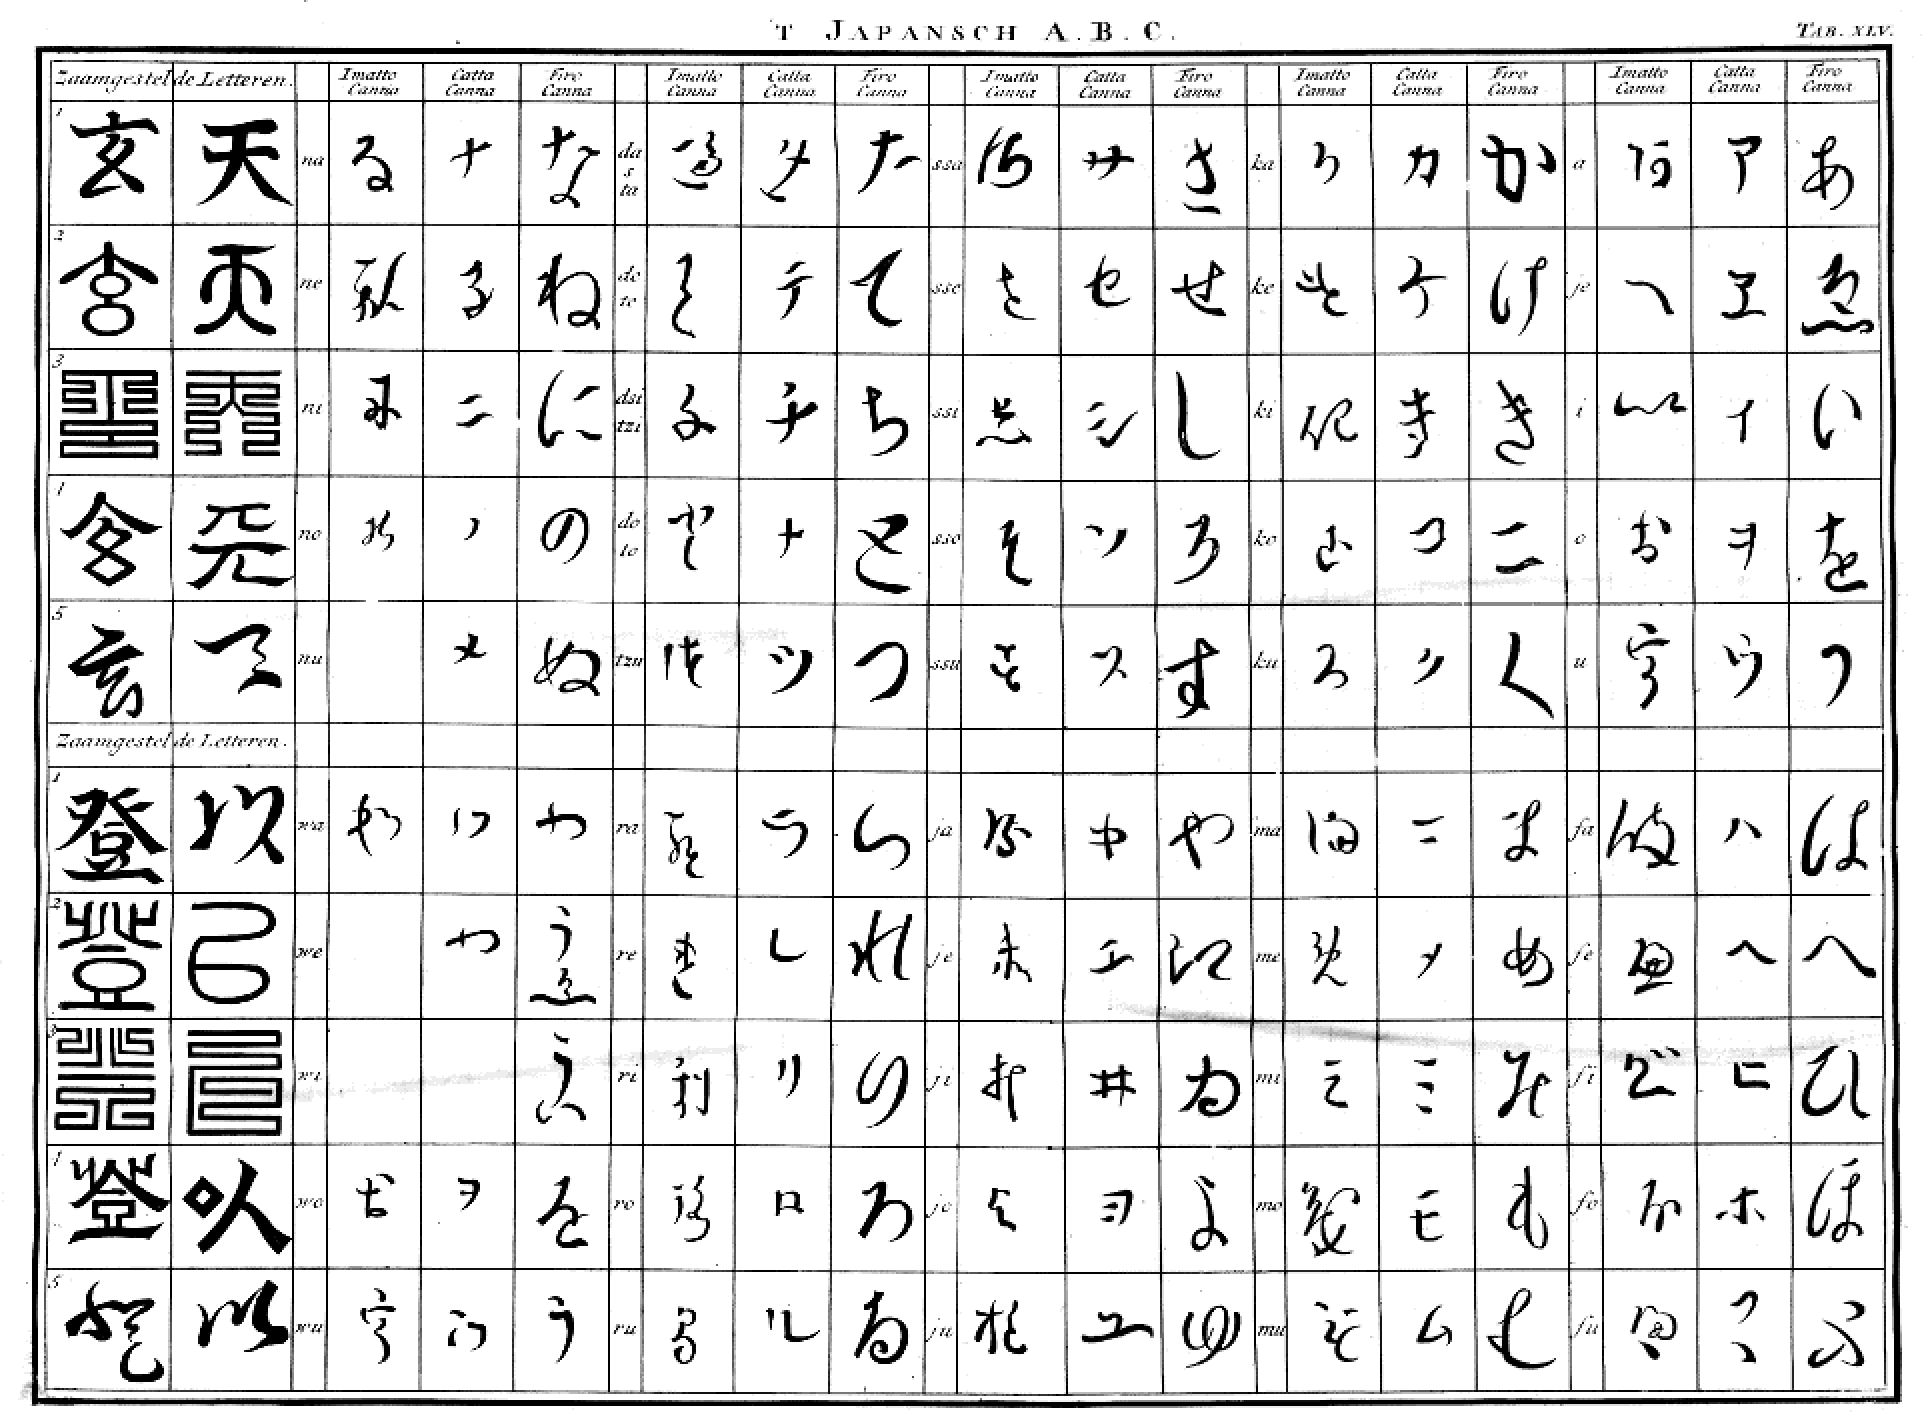 Filejapanese alphabet by engelbert kaempfer 1690 1693g filejapanese alphabet by engelbert kaempfer 1690 1693g thecheapjerseys Choice Image